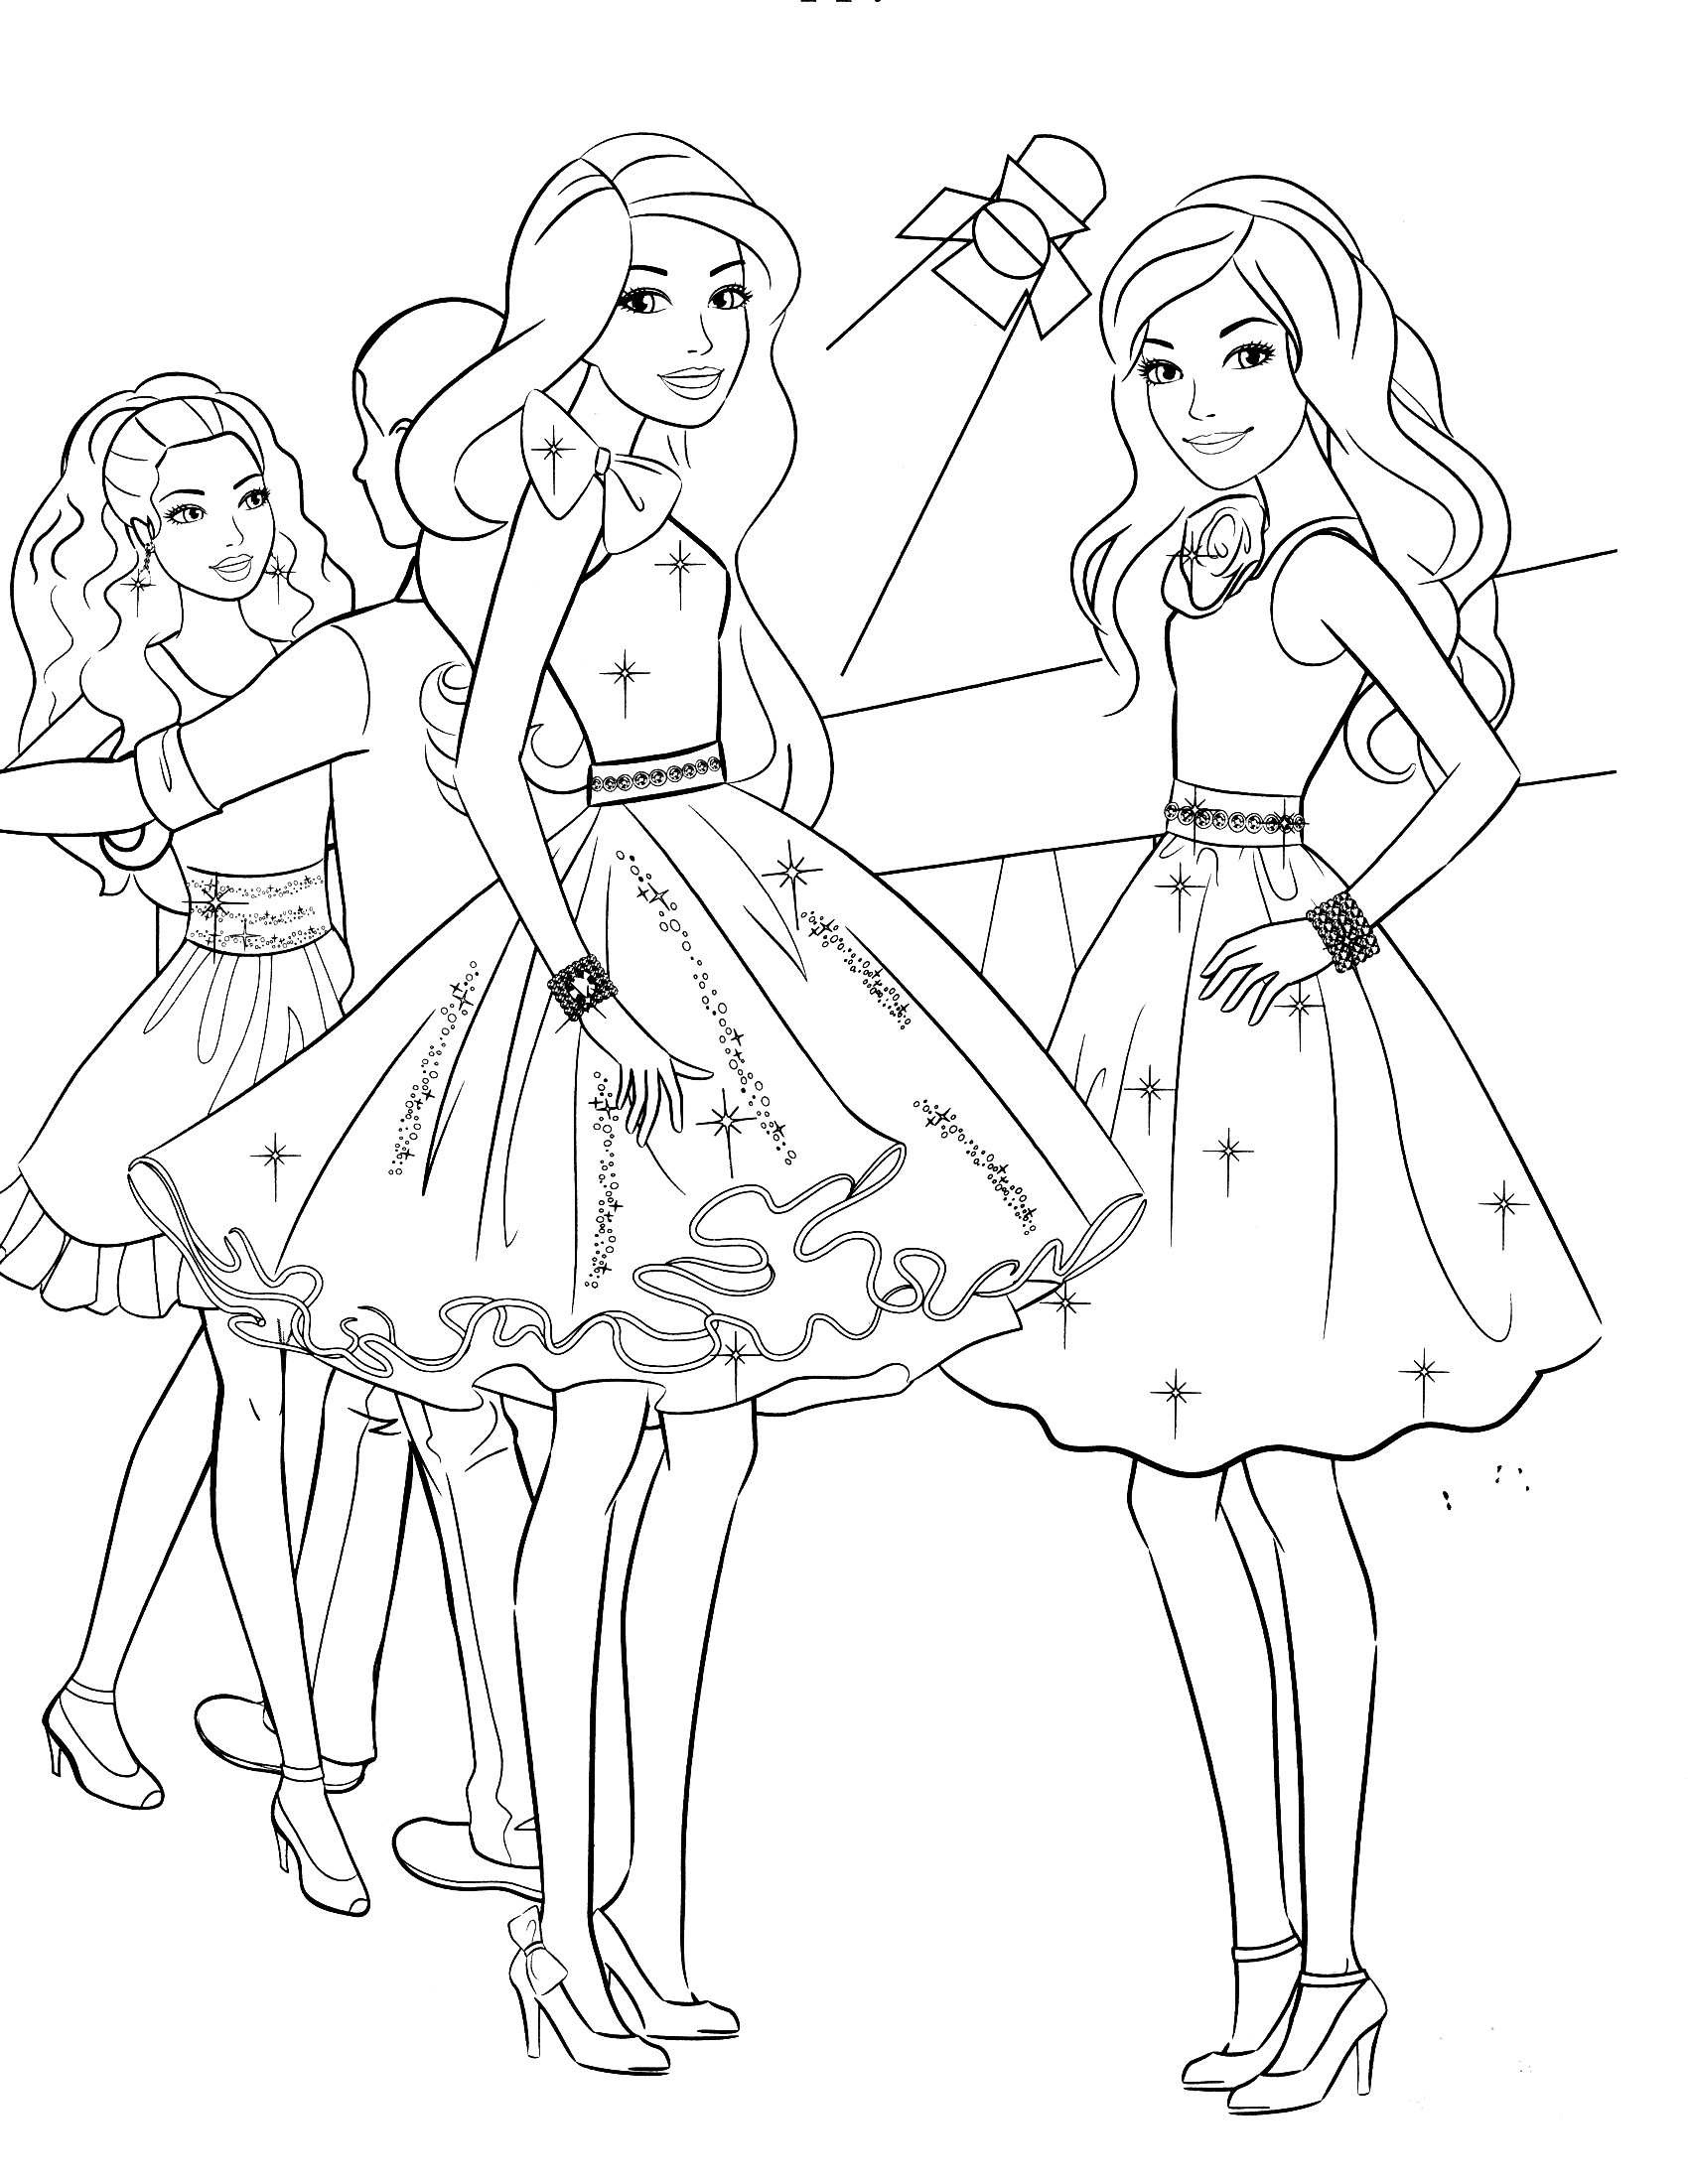 Coloring Sheets For Girls With The Words Dream  Coloriage Barbie au bal à imprimer